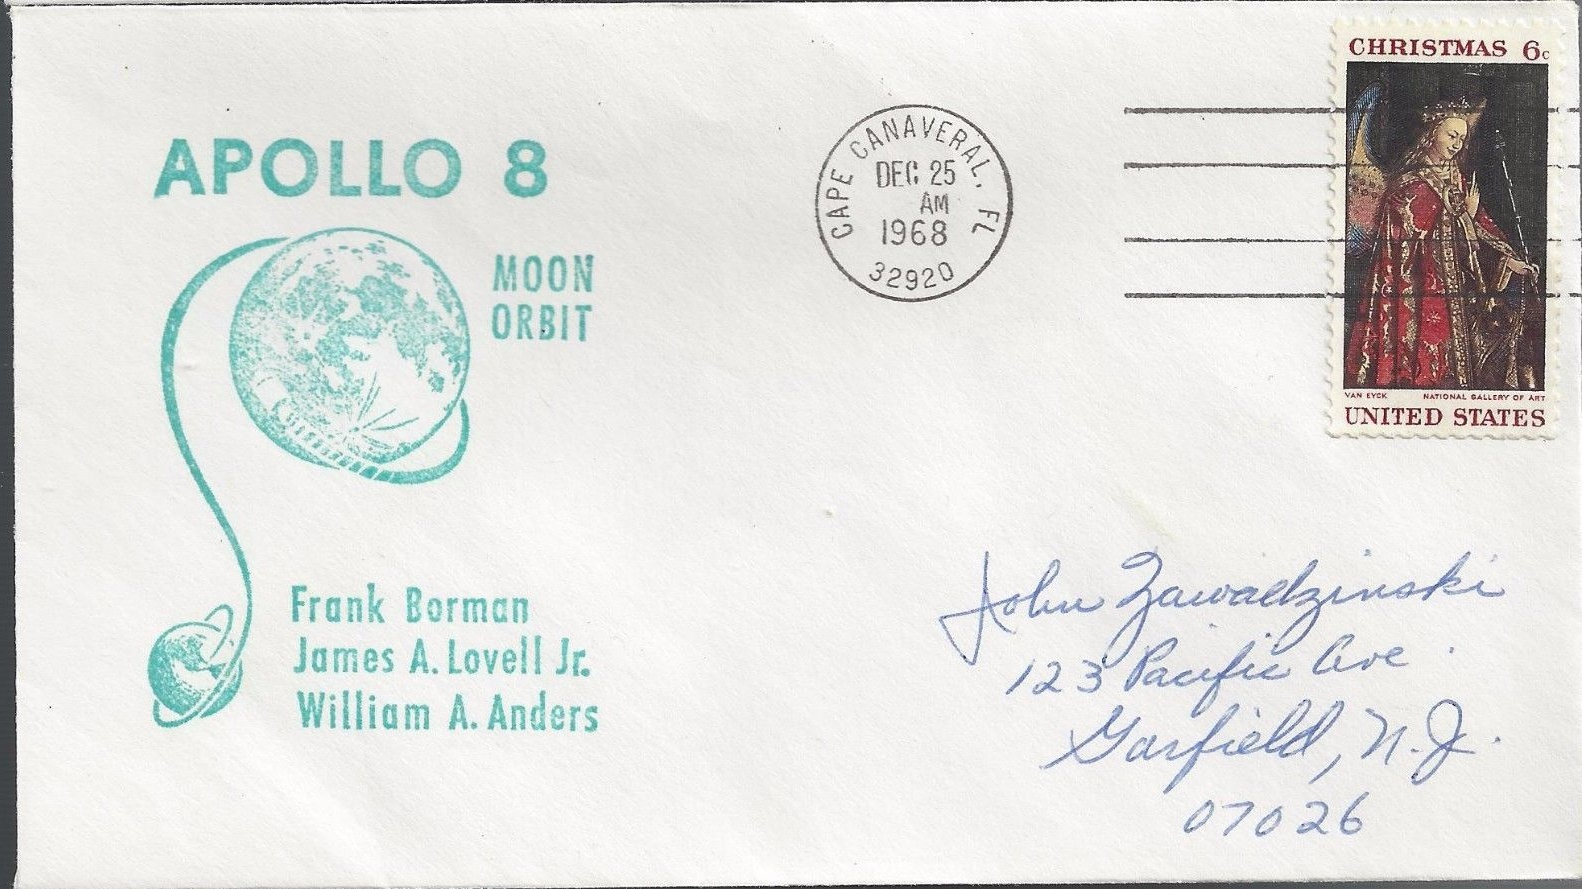 Commemorative cover marking Apollo 8's lunar orbit, posted at Cape Canaveral, Florida, on Christmas Day, December 25, 1968